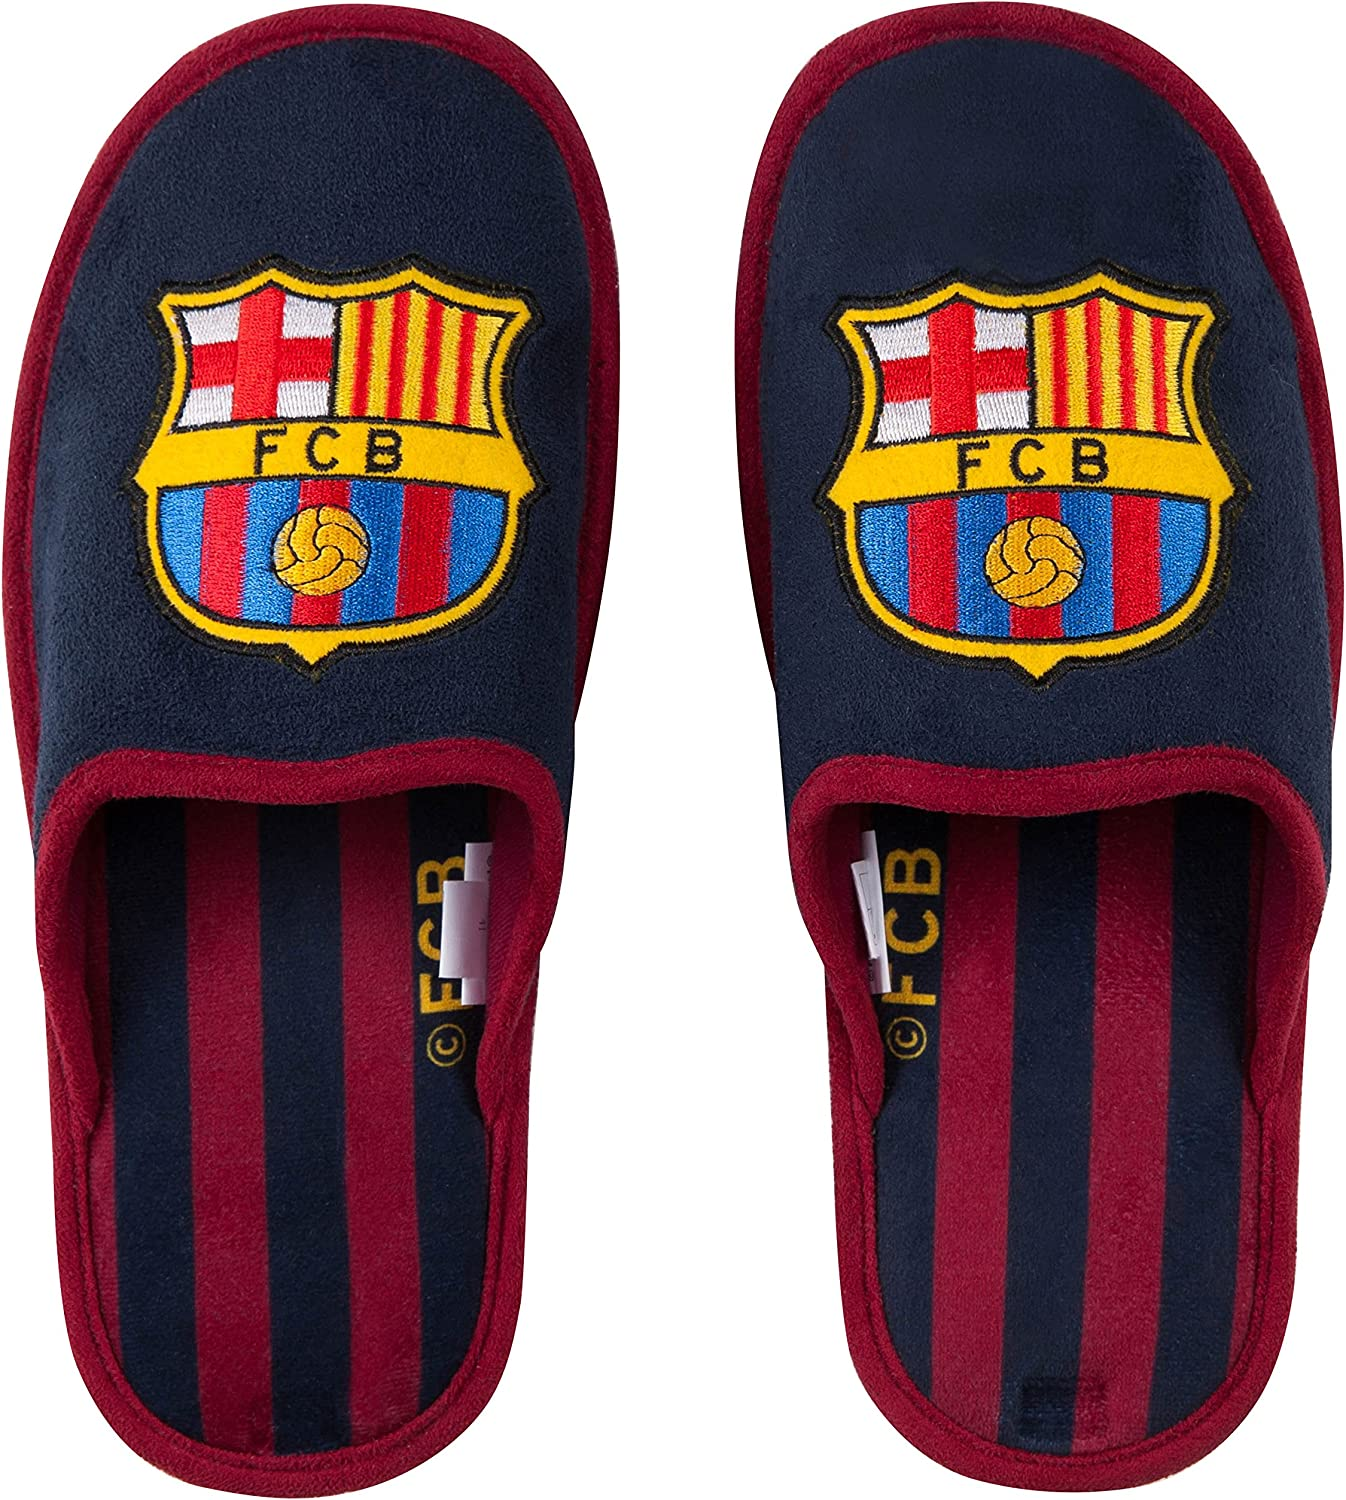 Fc Barcelone Chaussons Barca Collection Officielle Taille Adulte Homme